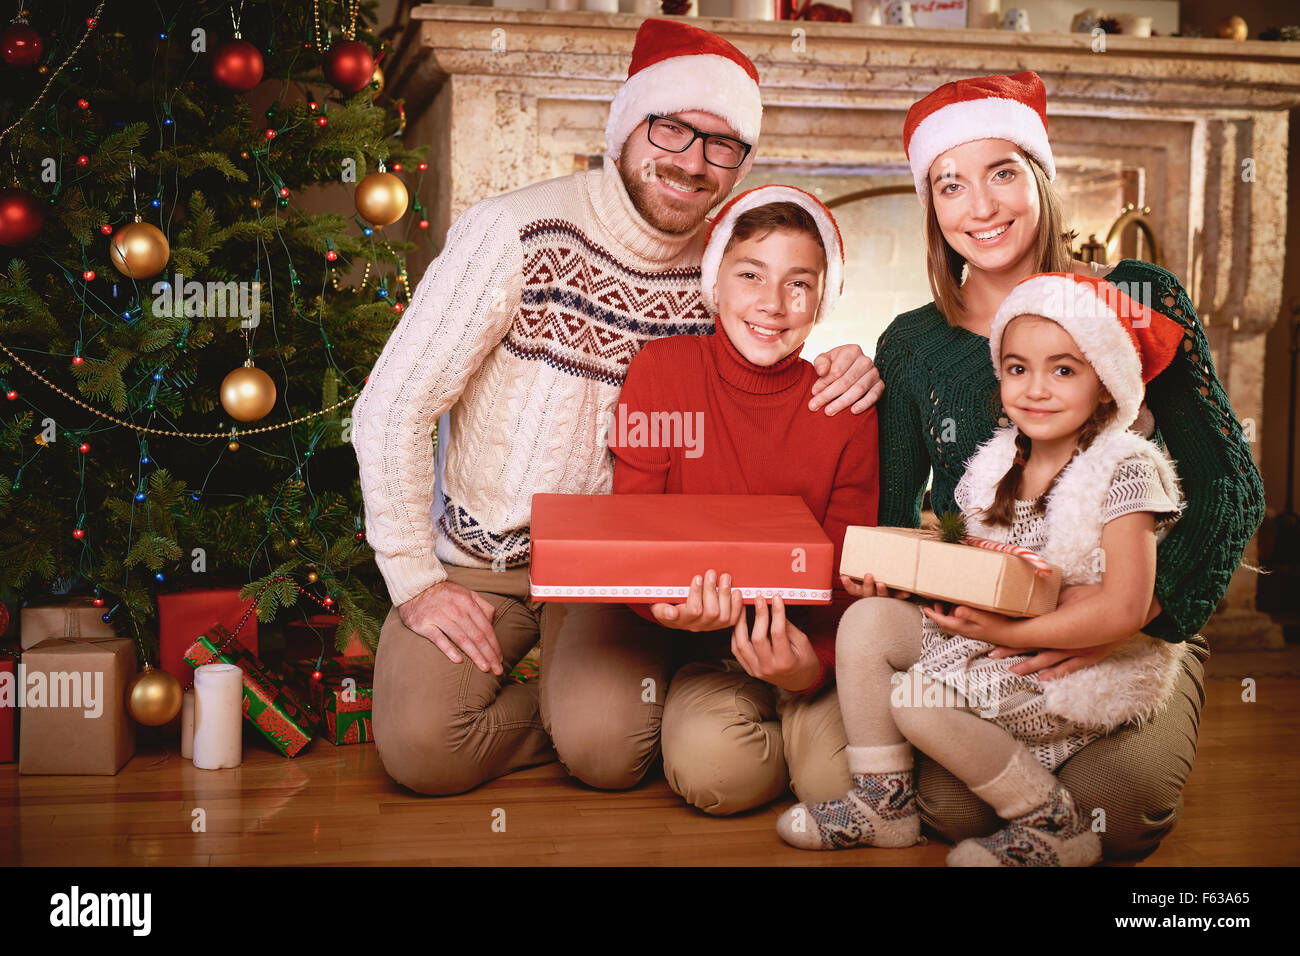 Happy Family in Santa caps looking at camera by Christmas Tree Photo Stock